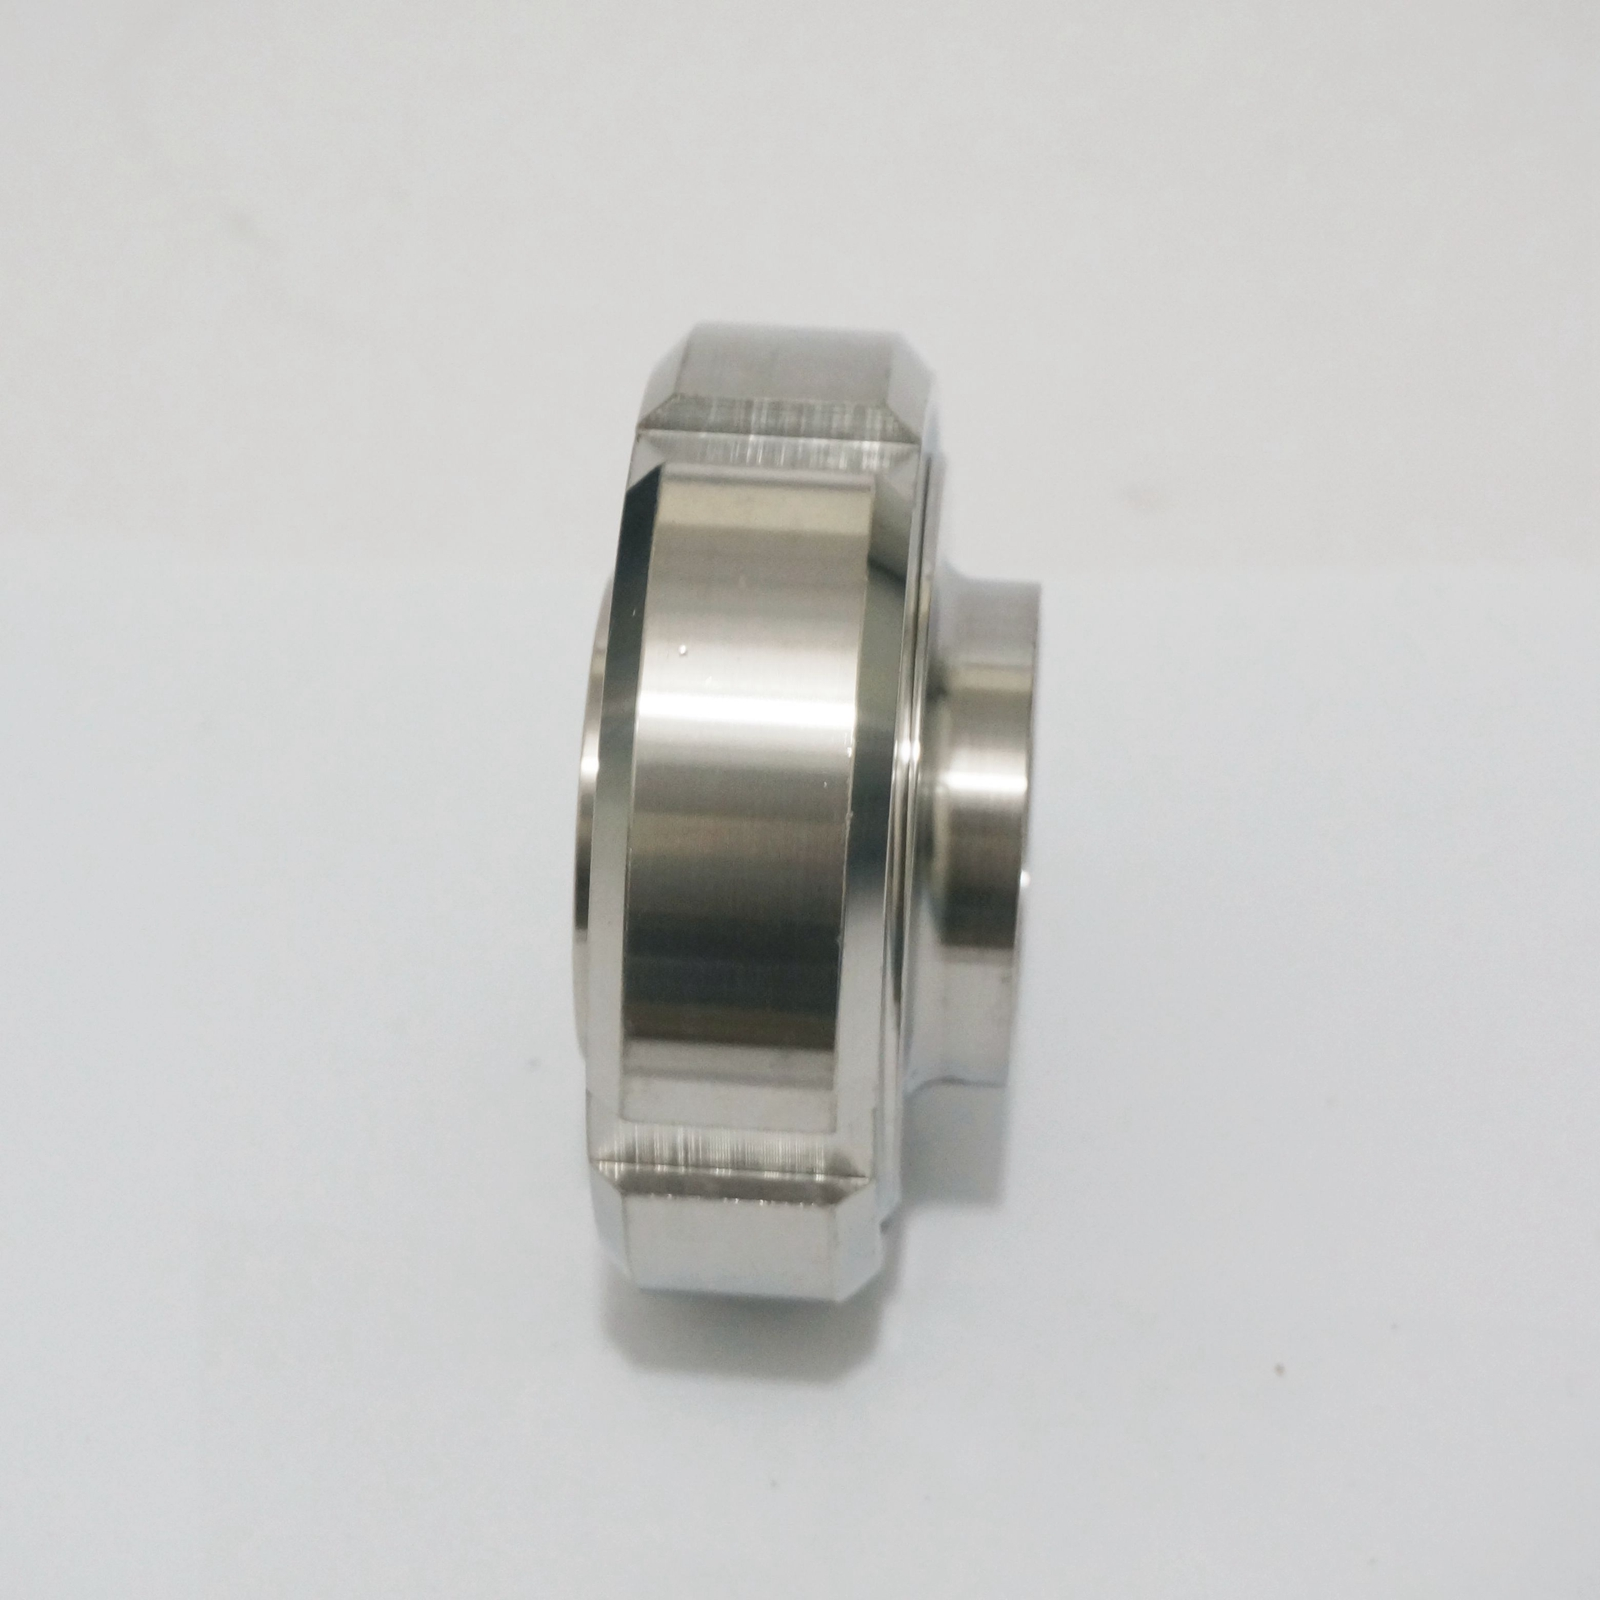 DN40 304 Stainless Steel Sanitary DIN Weld On Socket Union Set Pipe Fitting